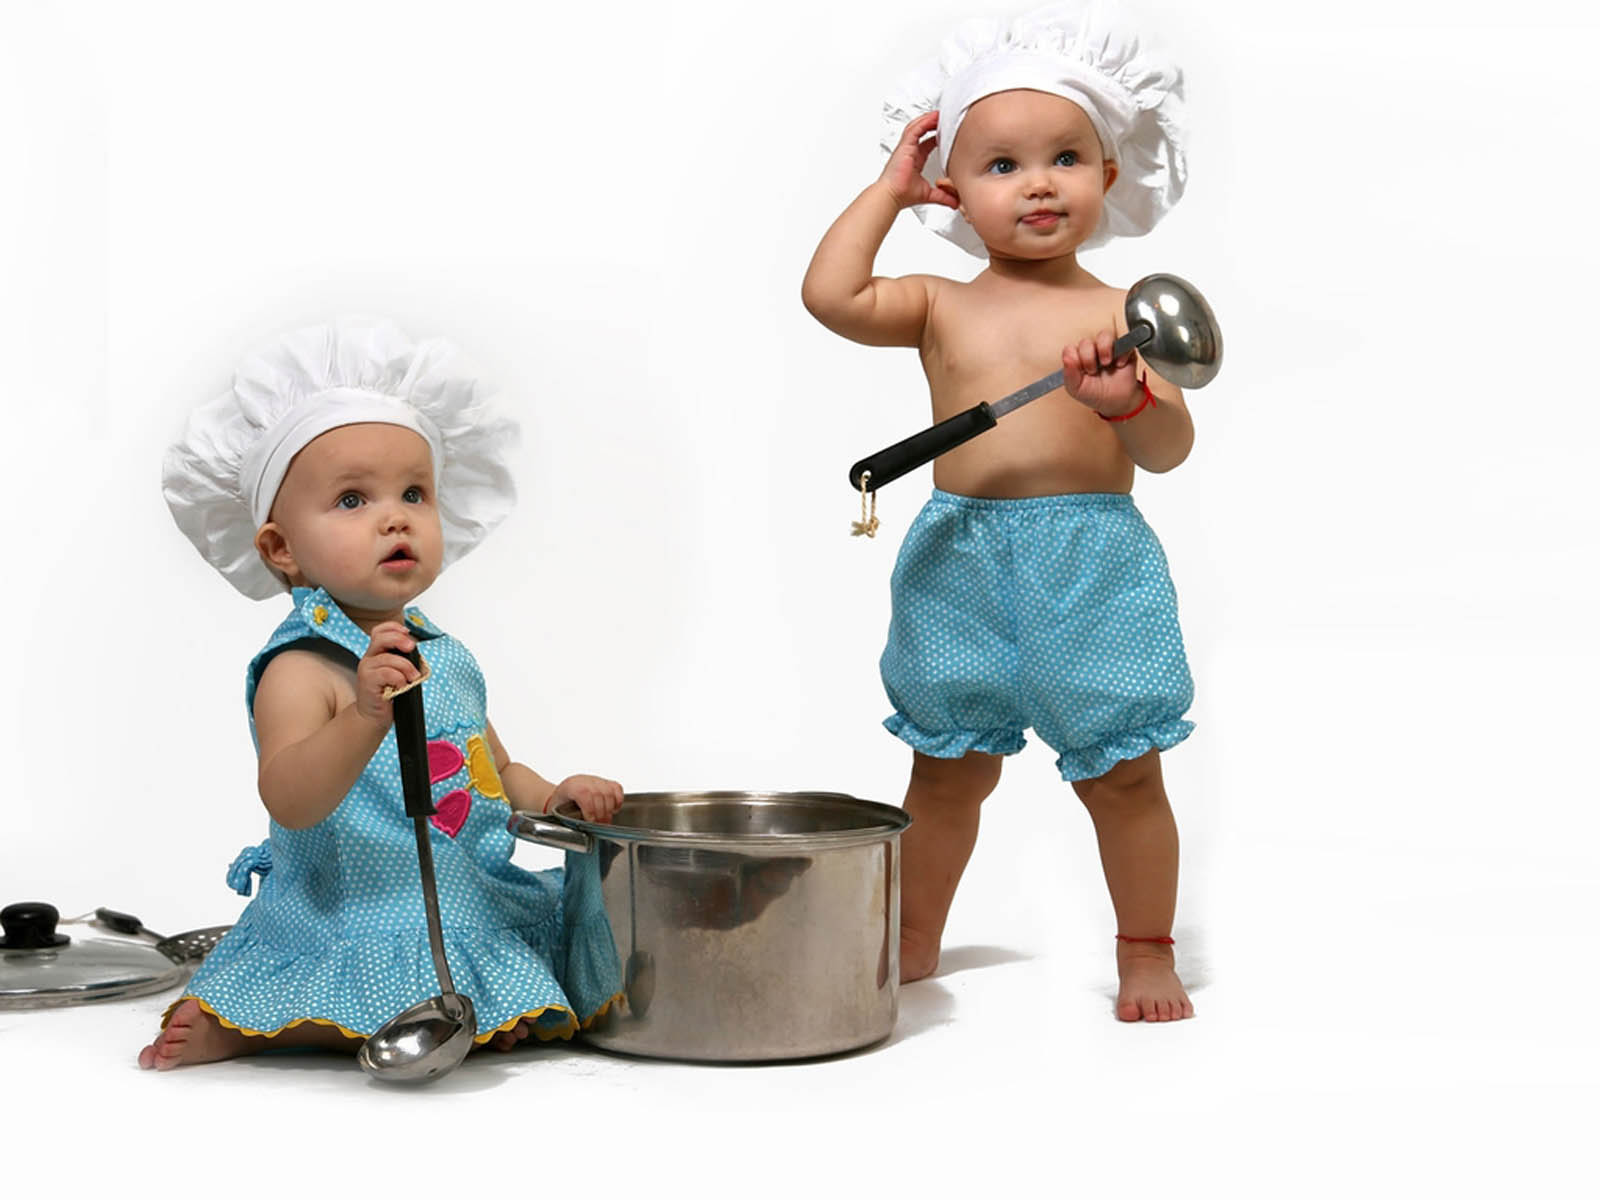 Wallpapers funny babies wallpapers for Wallpaper bambini